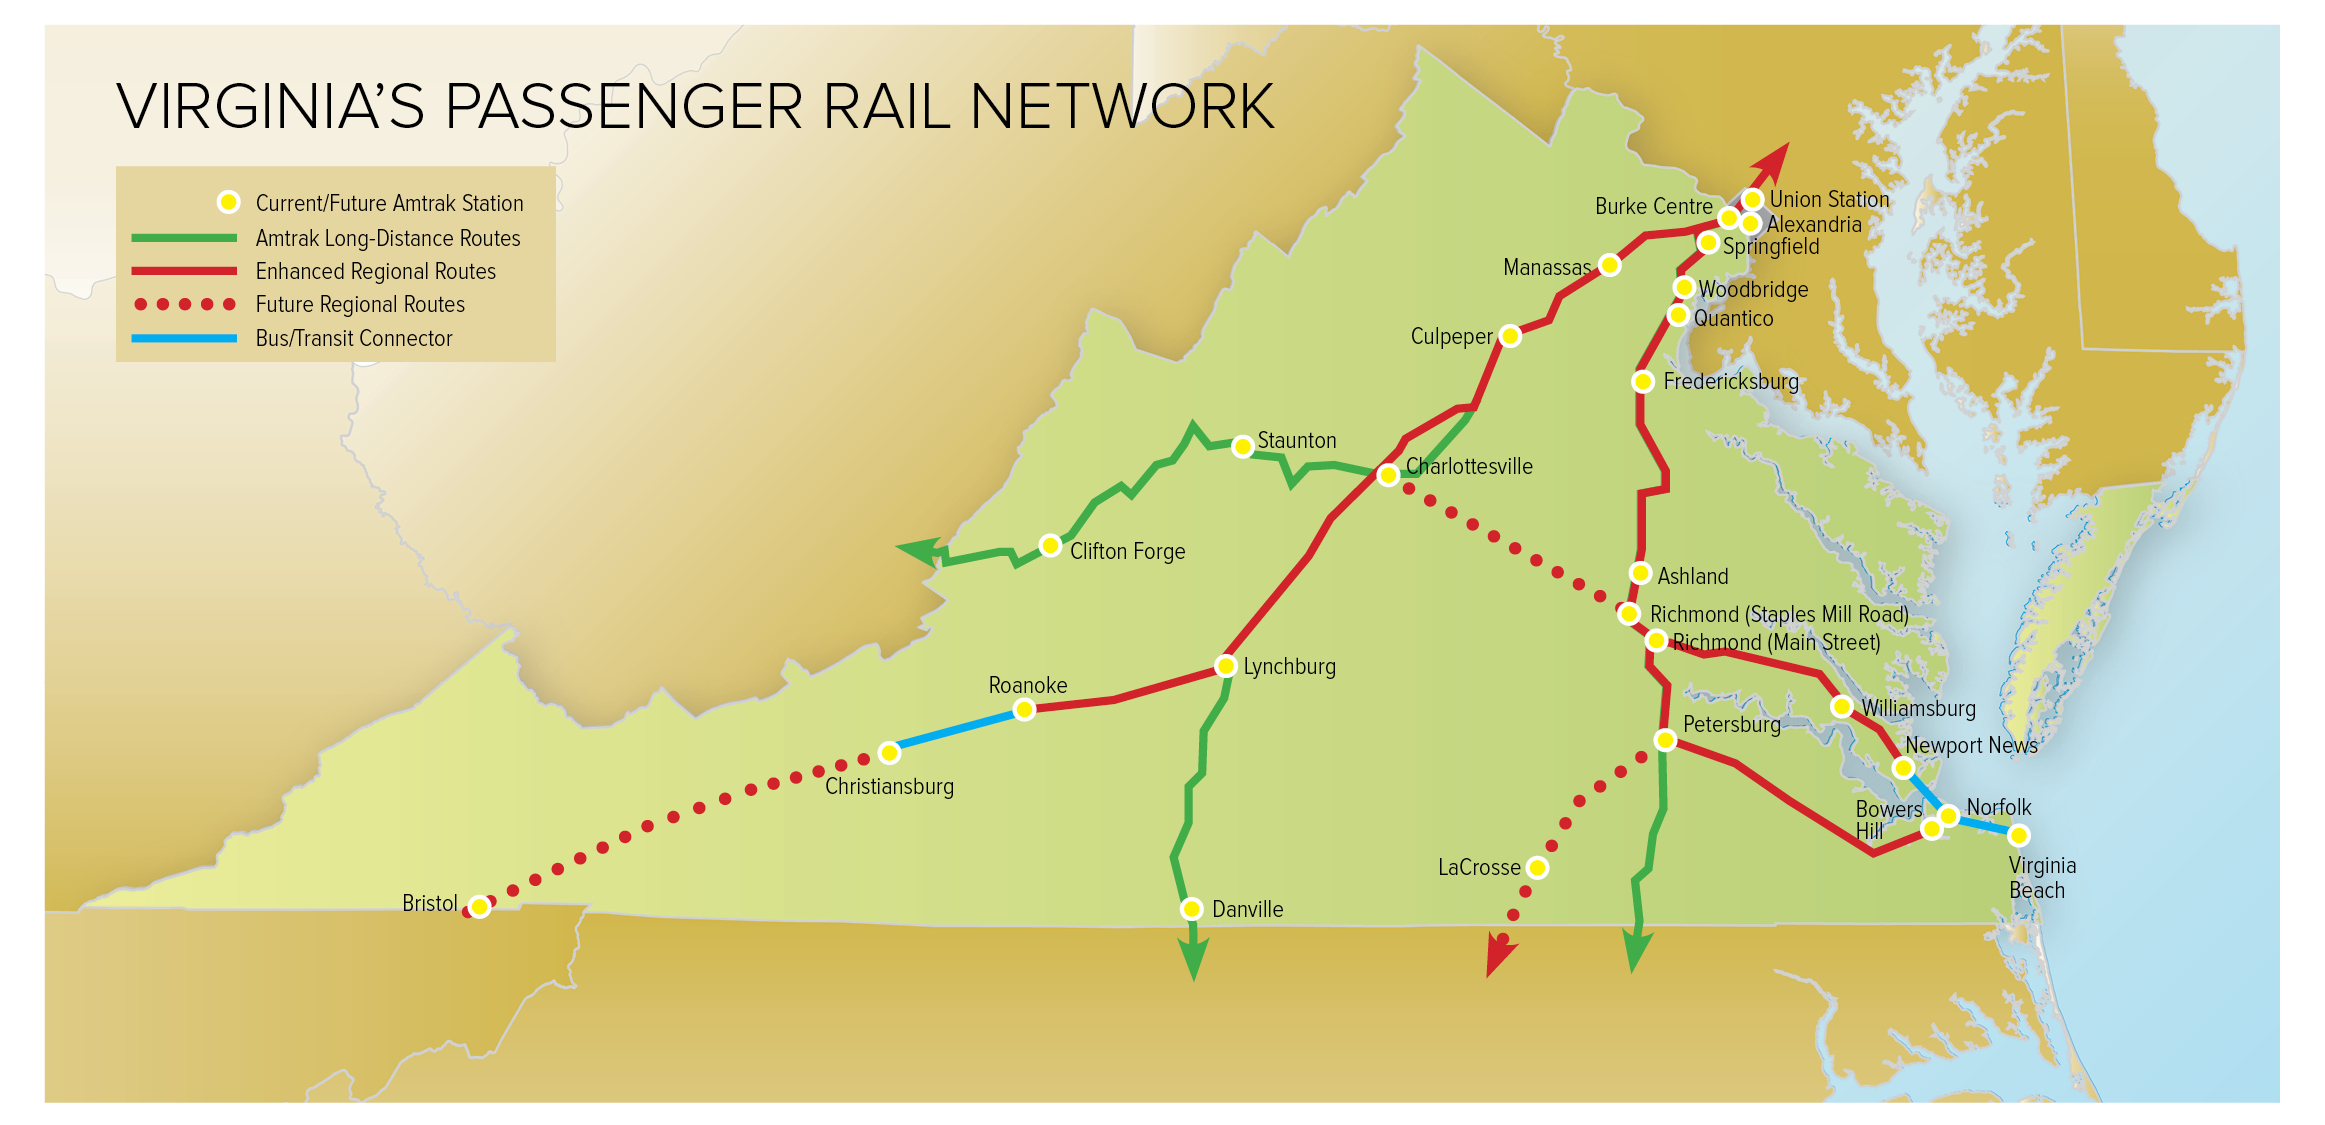 A map of VA showing current and future regional/long distance Amtrak routes. I believe this is aspirational, not planned.